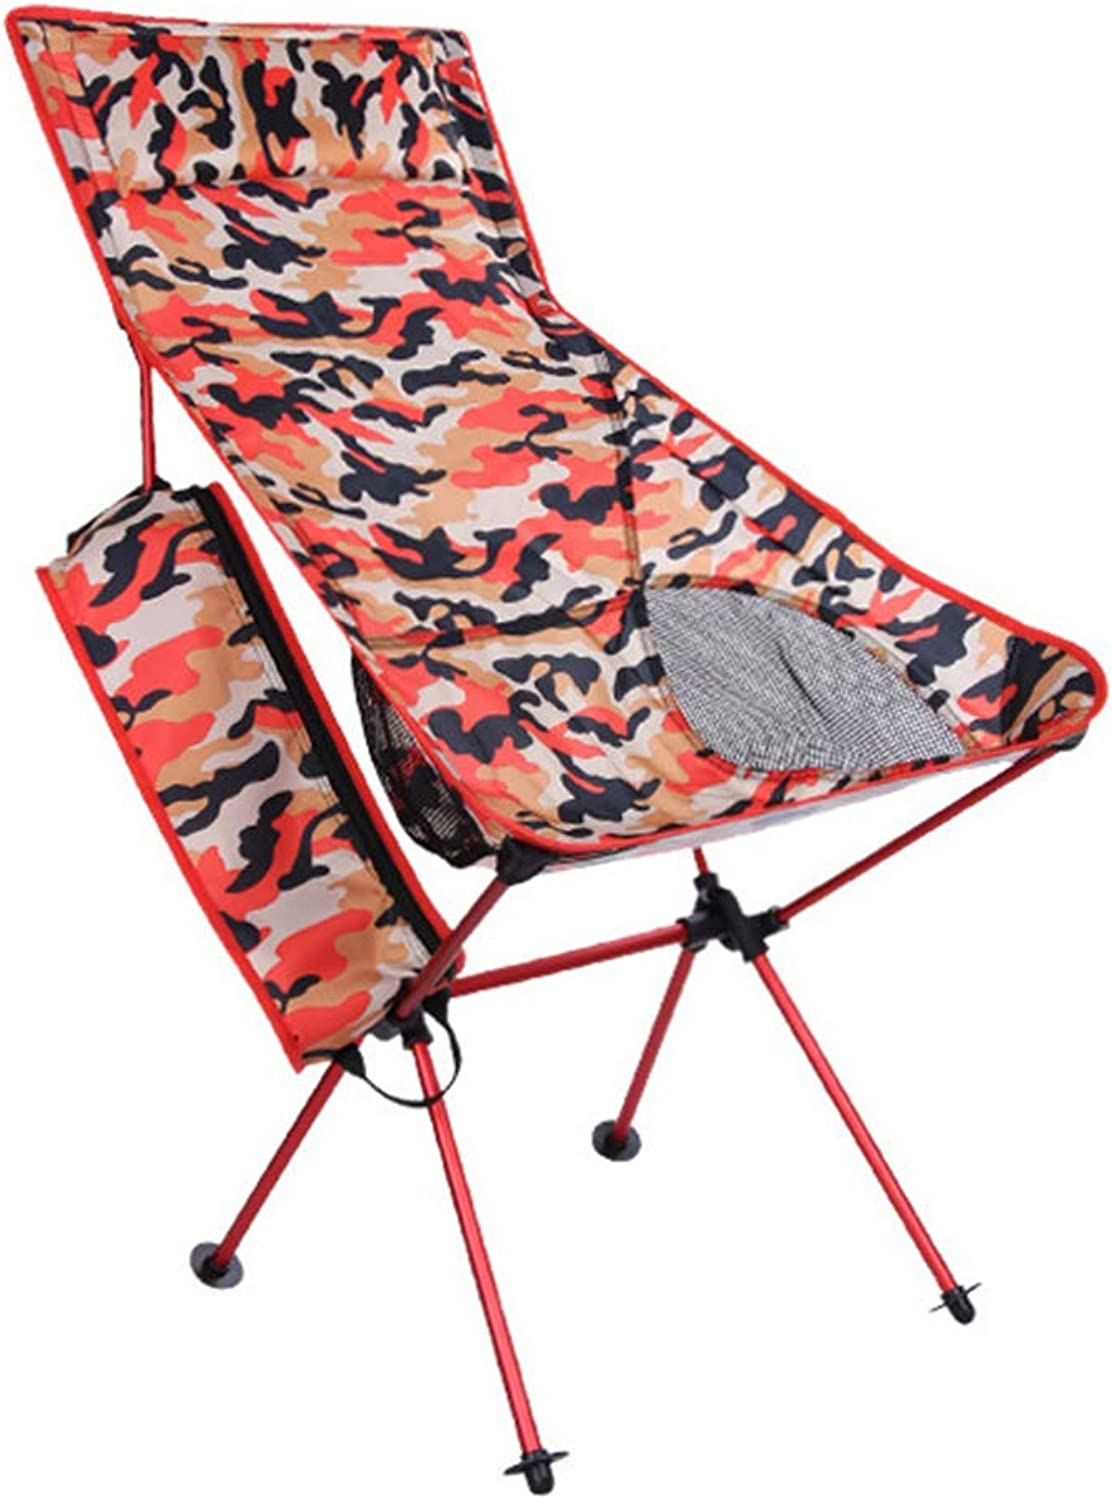 Camping Chair Lightweight Portable Folding Stool Long Casual Folding Chair, Oversized Support 260lbs, for Outdoor Camp, Travel, Picnic